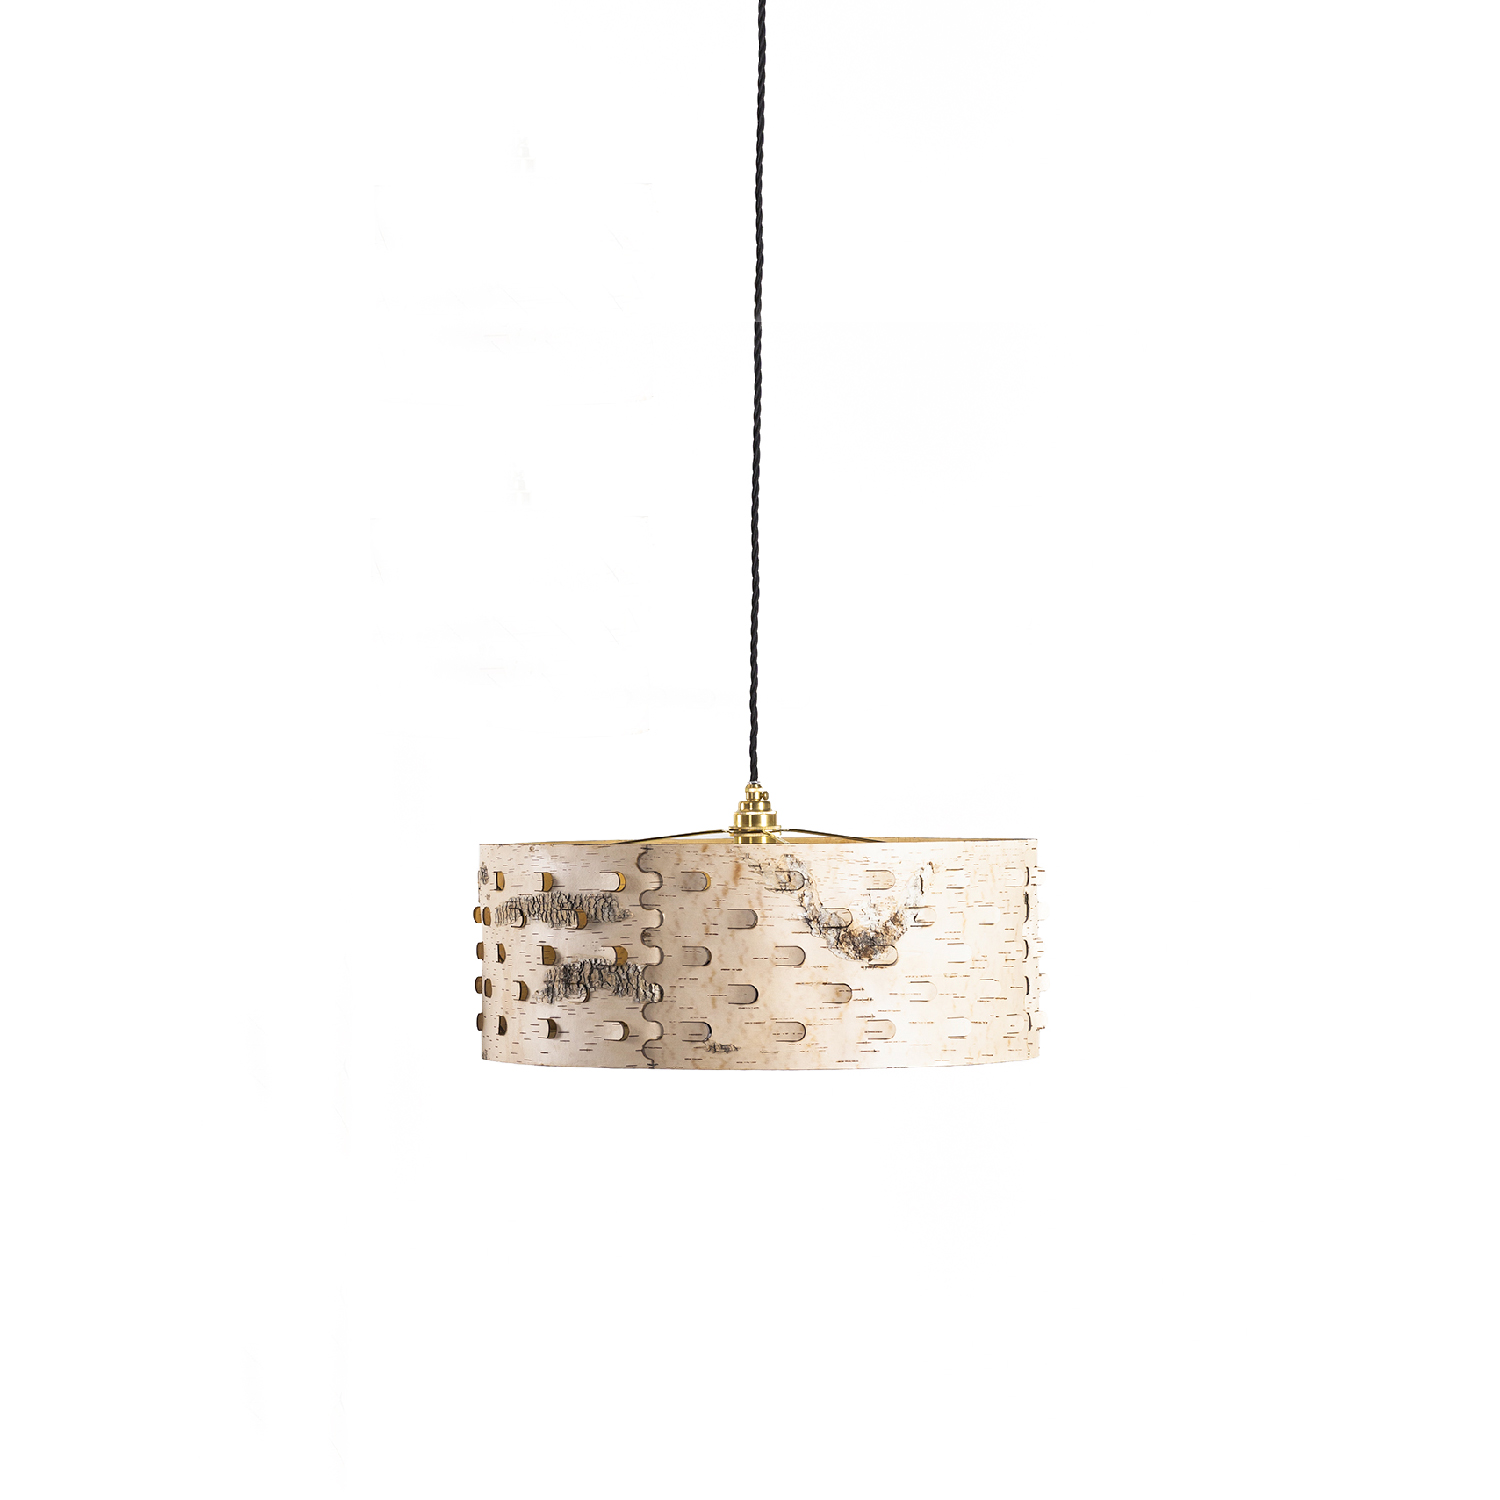 Svetoch SH50 Pendant Lamp - A traditional glue-free plug technique is combined with a modern laser technique which allows the light to shine through the lampshade in a playful manner. Svetoch is great at setting the mood and ensuring a cosy and intimate ambience.   Unlike in traditional craftsmanship, we make our products from the naturally velvety back of the birch bark. We deliberately chose the lighter inner layers of the bark to celebrate the graphic grain and colouring of each piece. Every object is thus one of a kind, representing a unique product of nature, which is emphasised by contrasting colour accents. High quality is ensured by elaborate craftsmanship and careful material selection.  The lampshade comes in three sizes, each available both as a pendant and floor lamp.   | Matter of Stuff